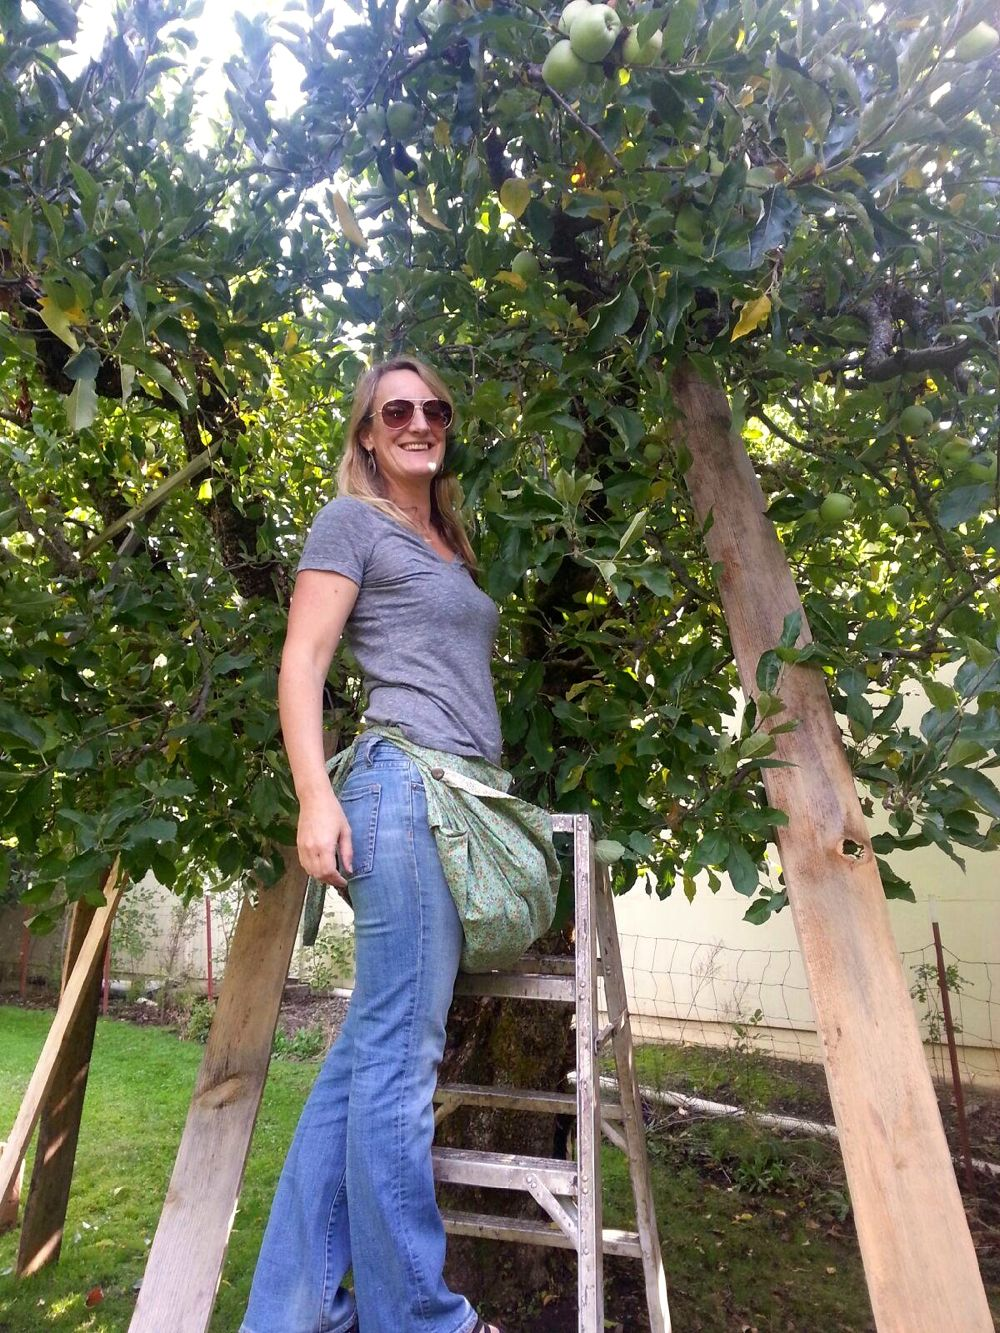 Jessica picking apples